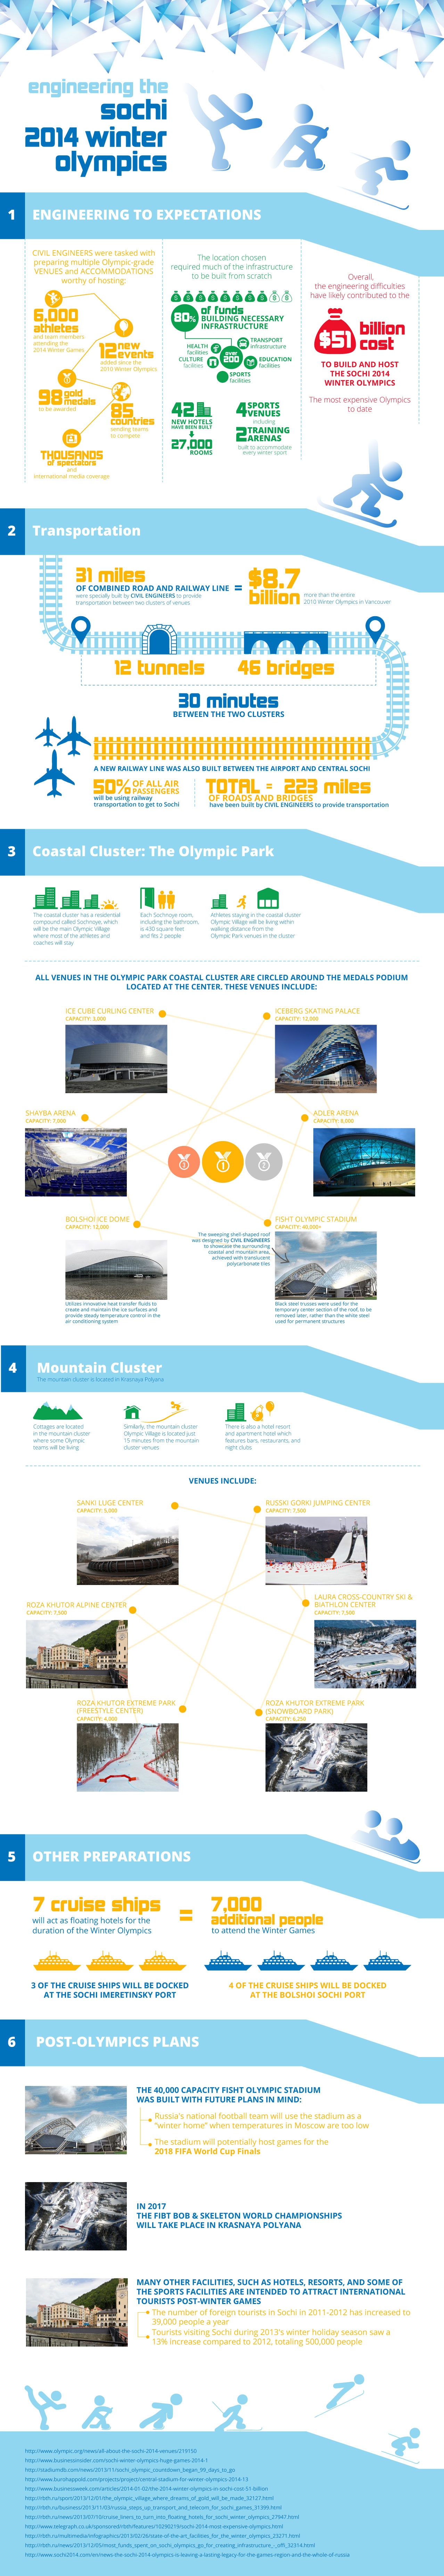 Engineering the Sochi Winter Olympics